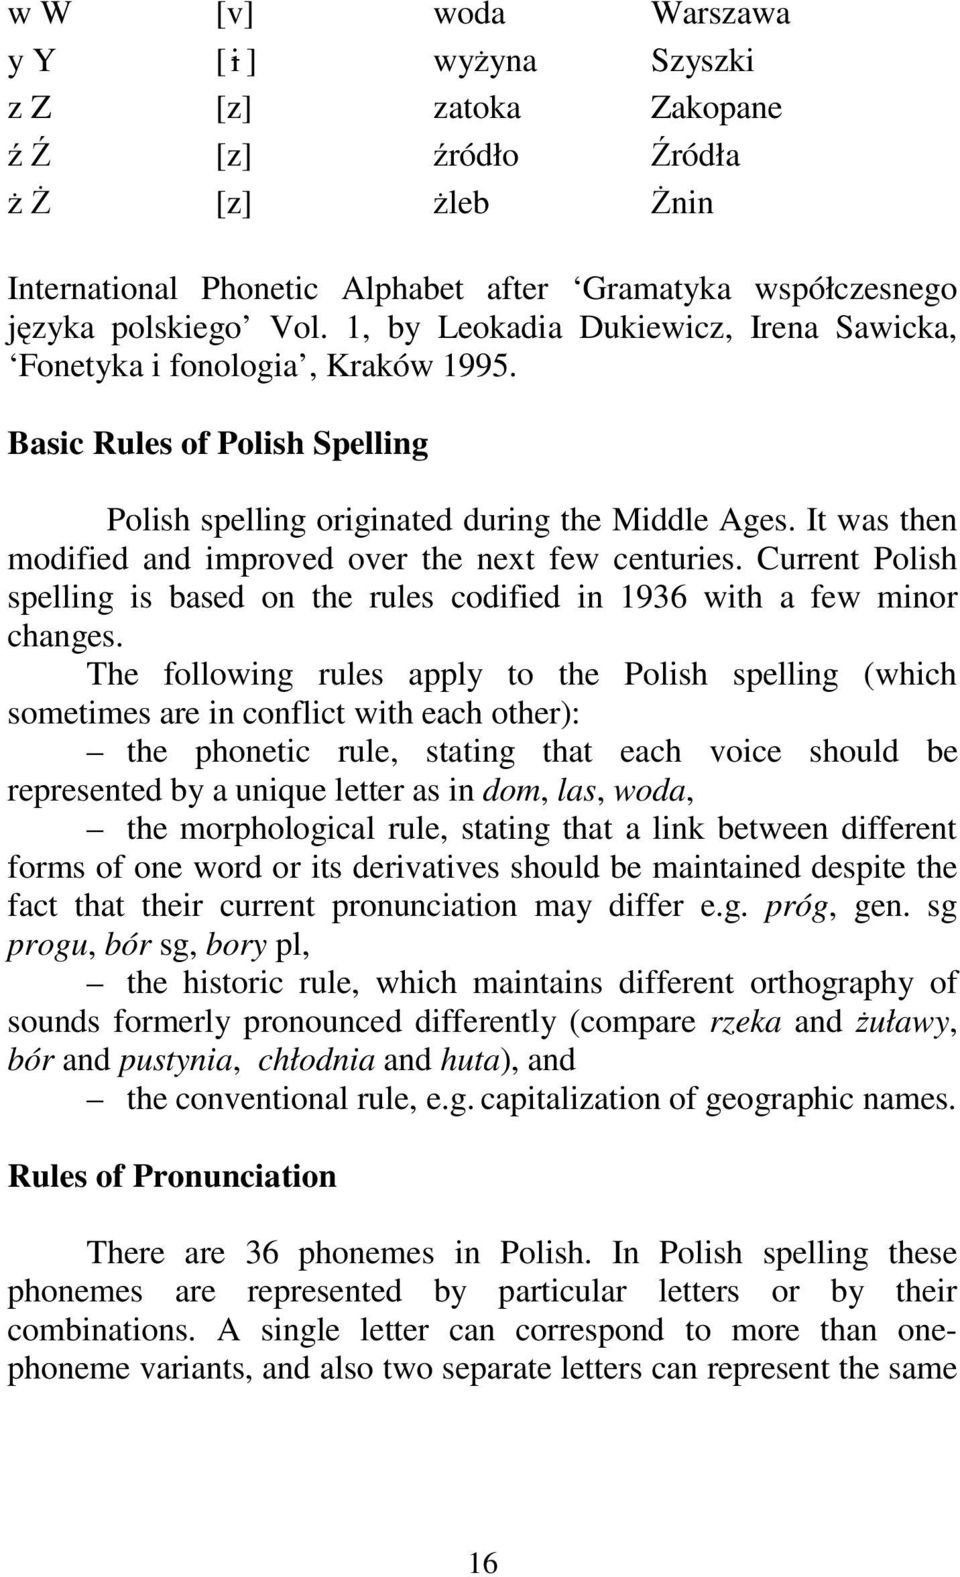 It was then modified and improved over the next few centuries. Current Polish spelling is based on the rules codified in 1936 with a few minor changes.